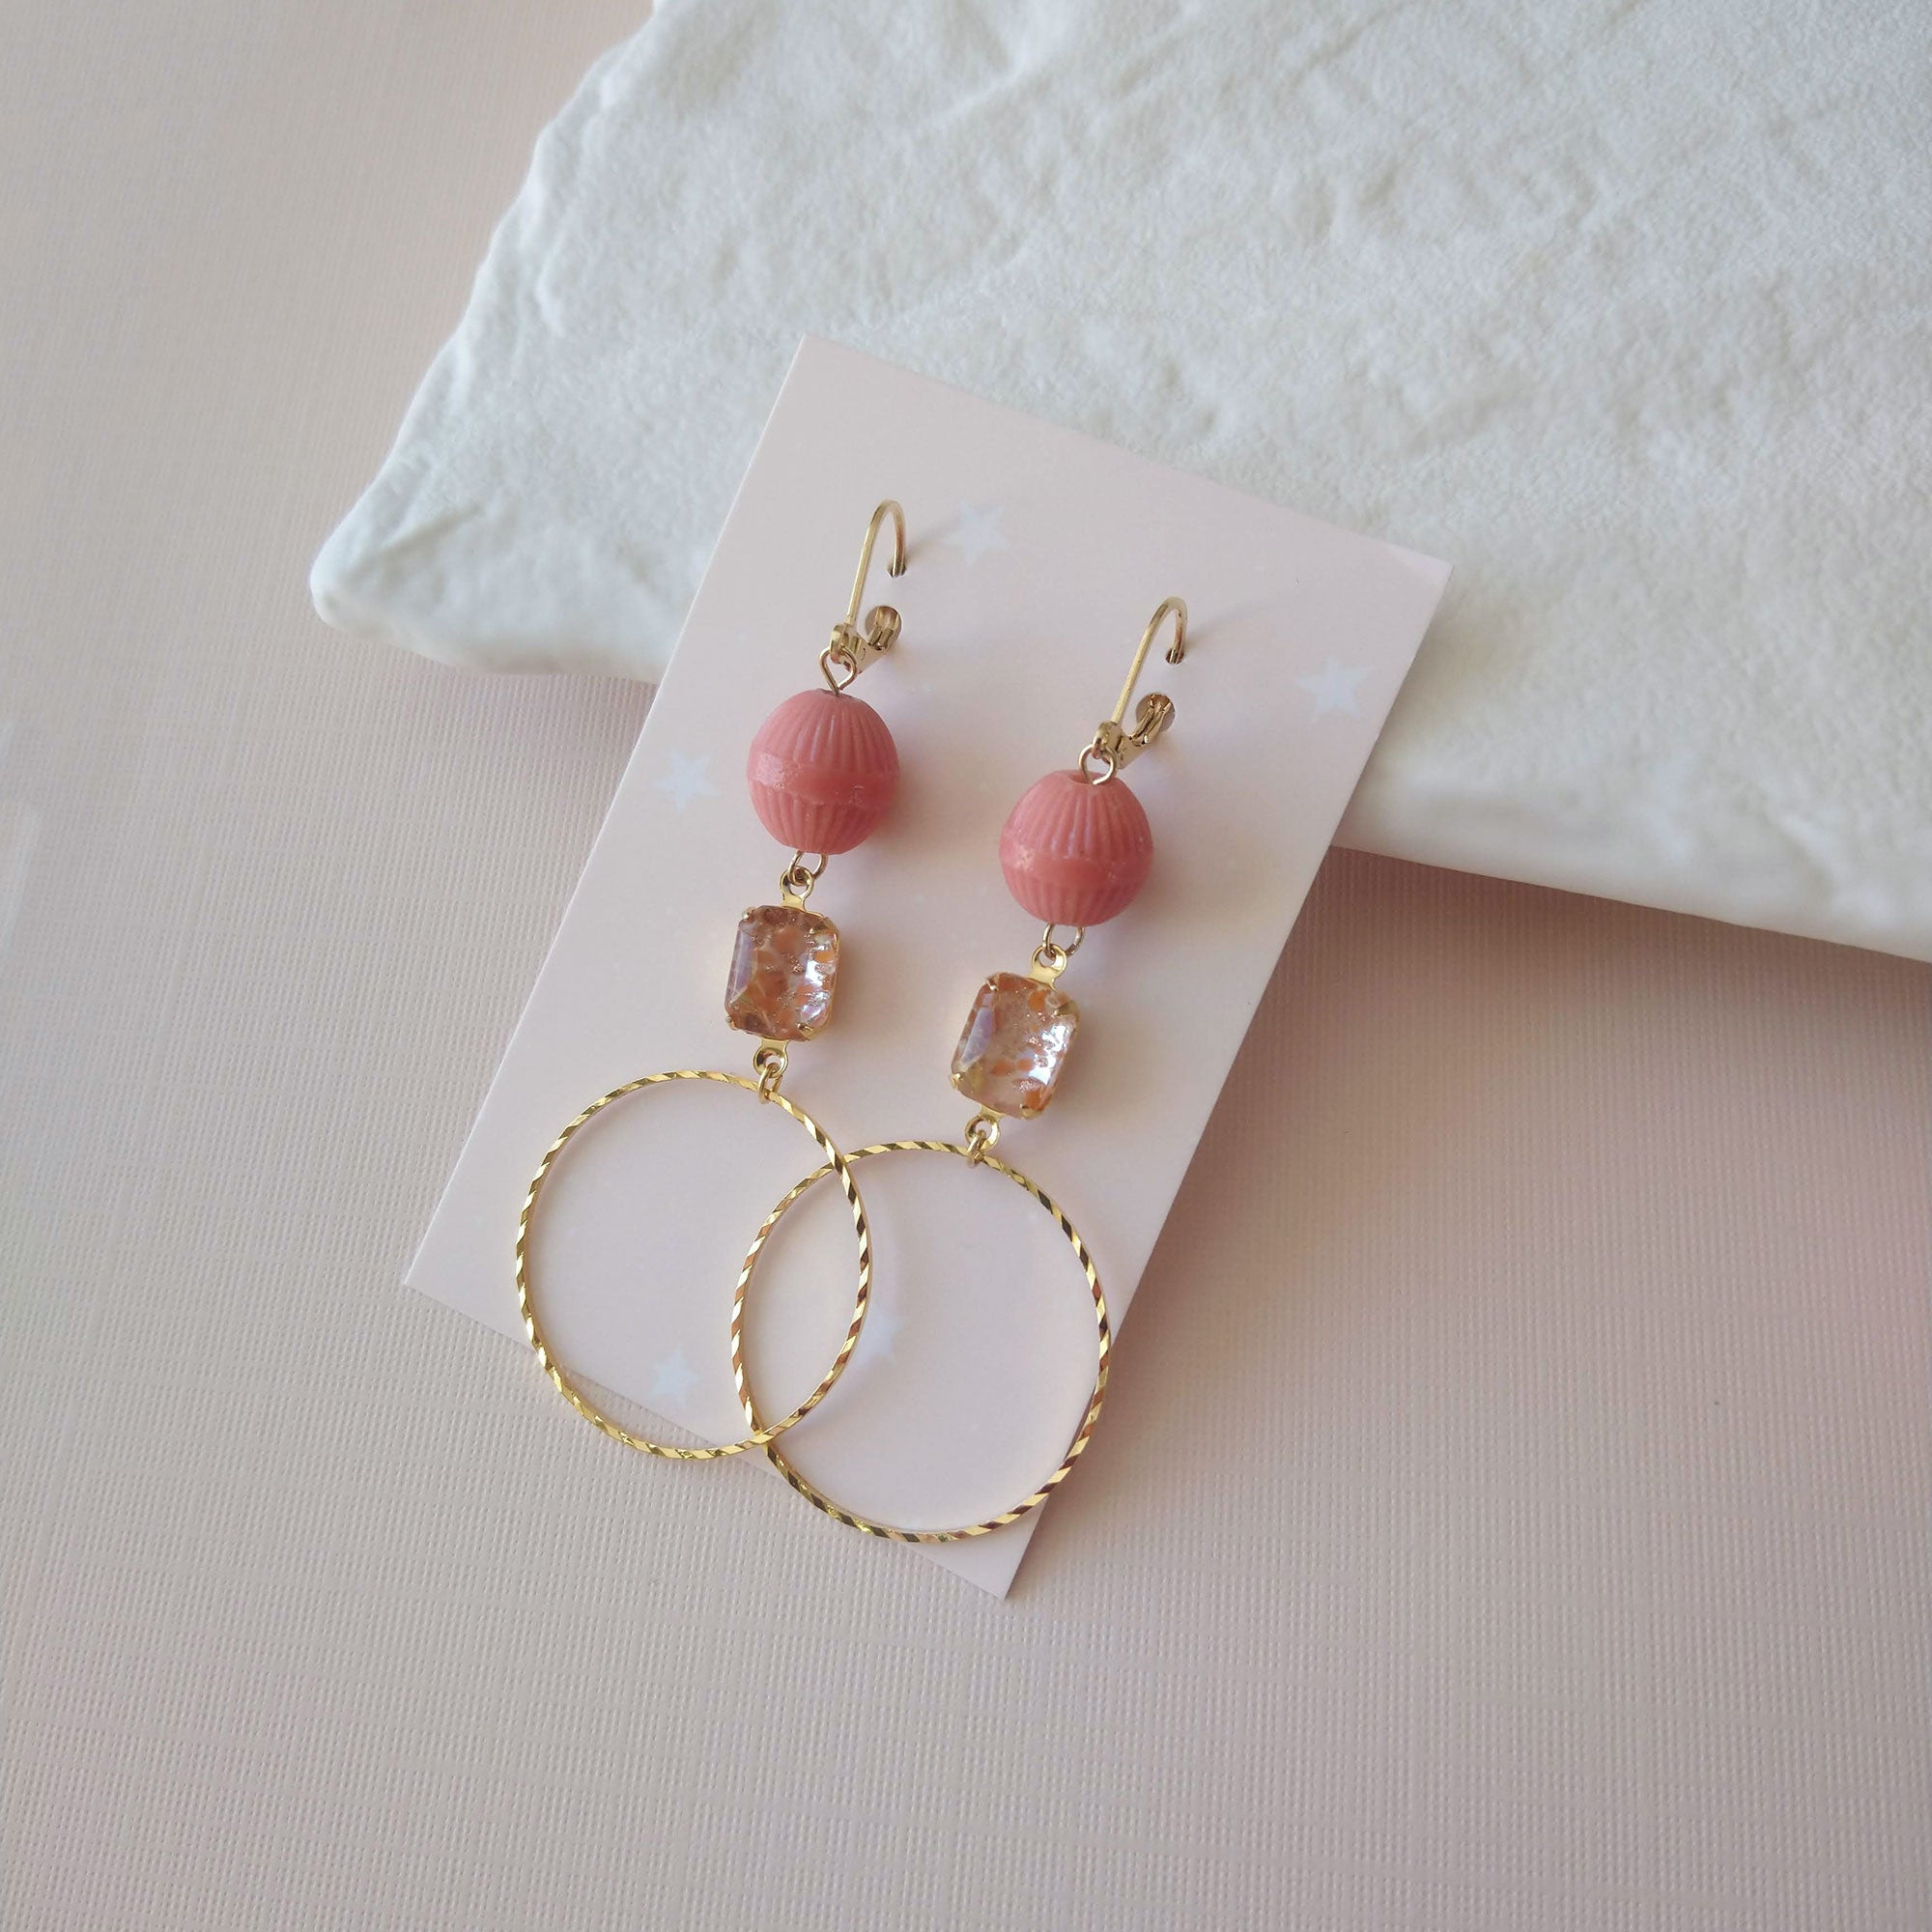 hoops earrings with vintage beads